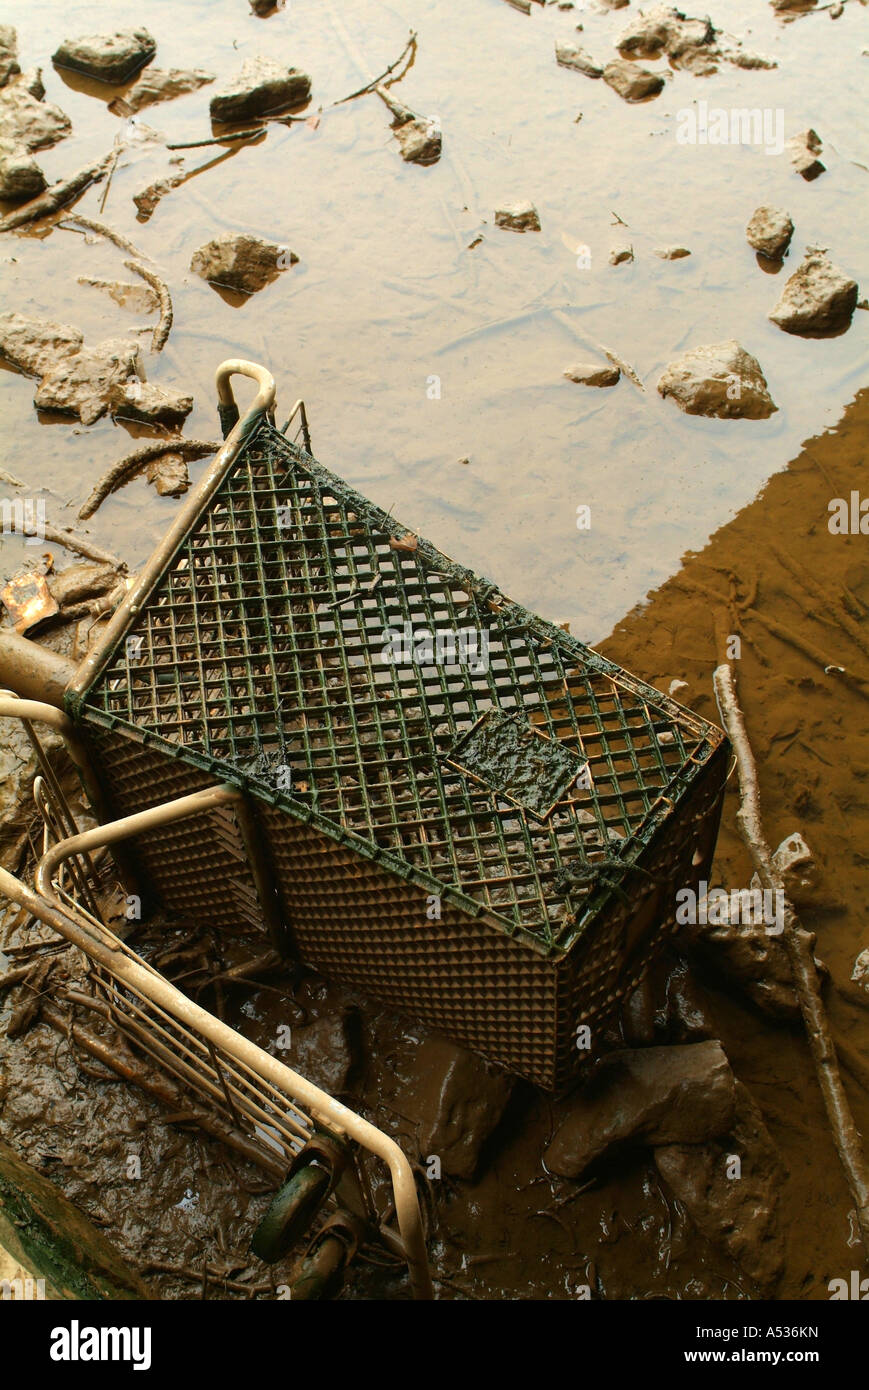 pollution-in-the-anacostia-river-washing